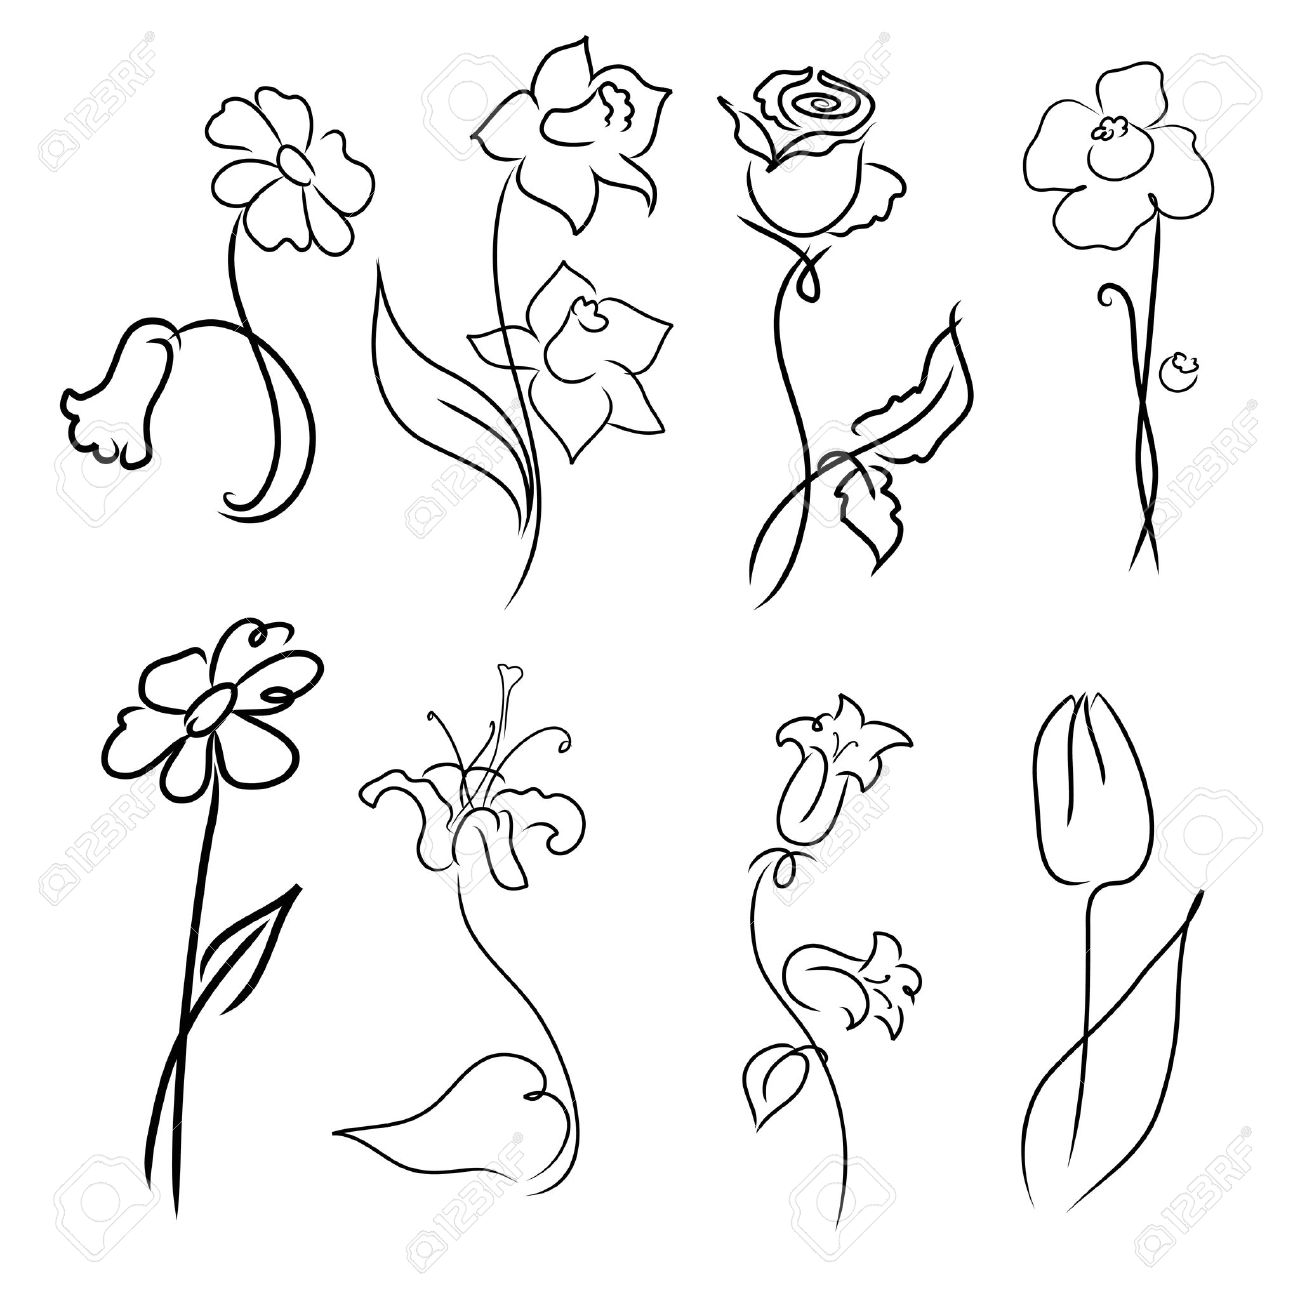 1300x1300 Simple Flower Designs For Pencil Drawing